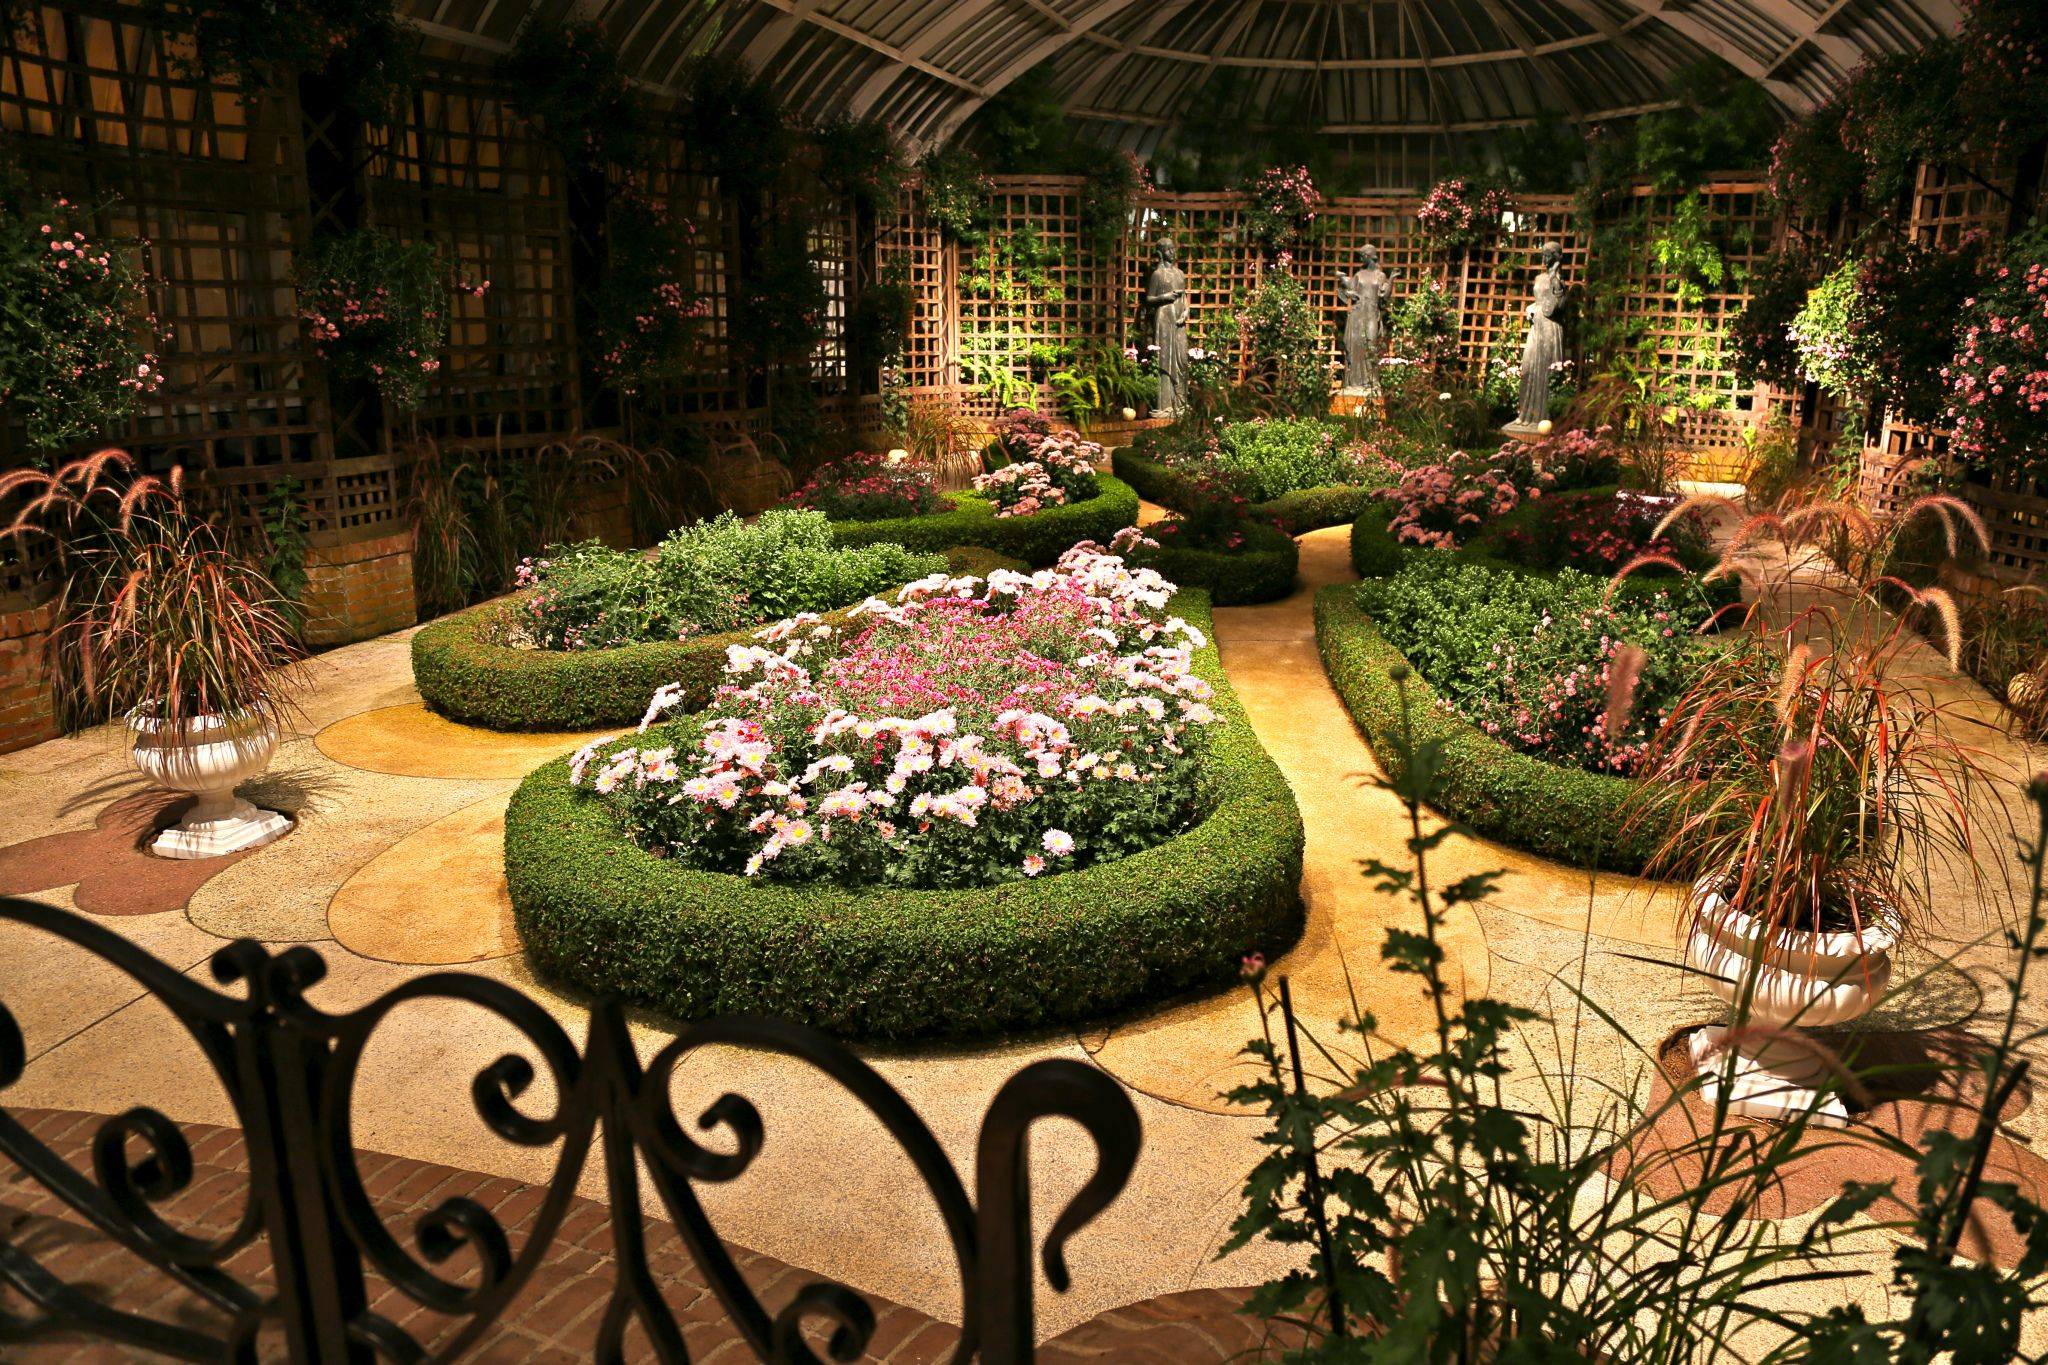 Fall Flower Show opens October 19! Thousands of chrysanthemums will ...